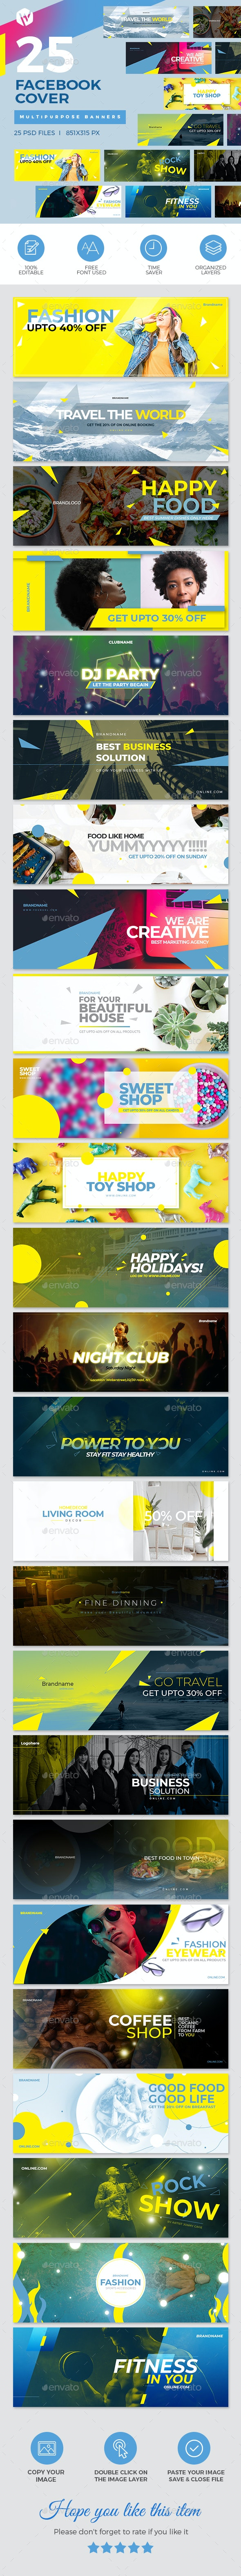 25 Facebook Cover Banners - Social Media Web Elements